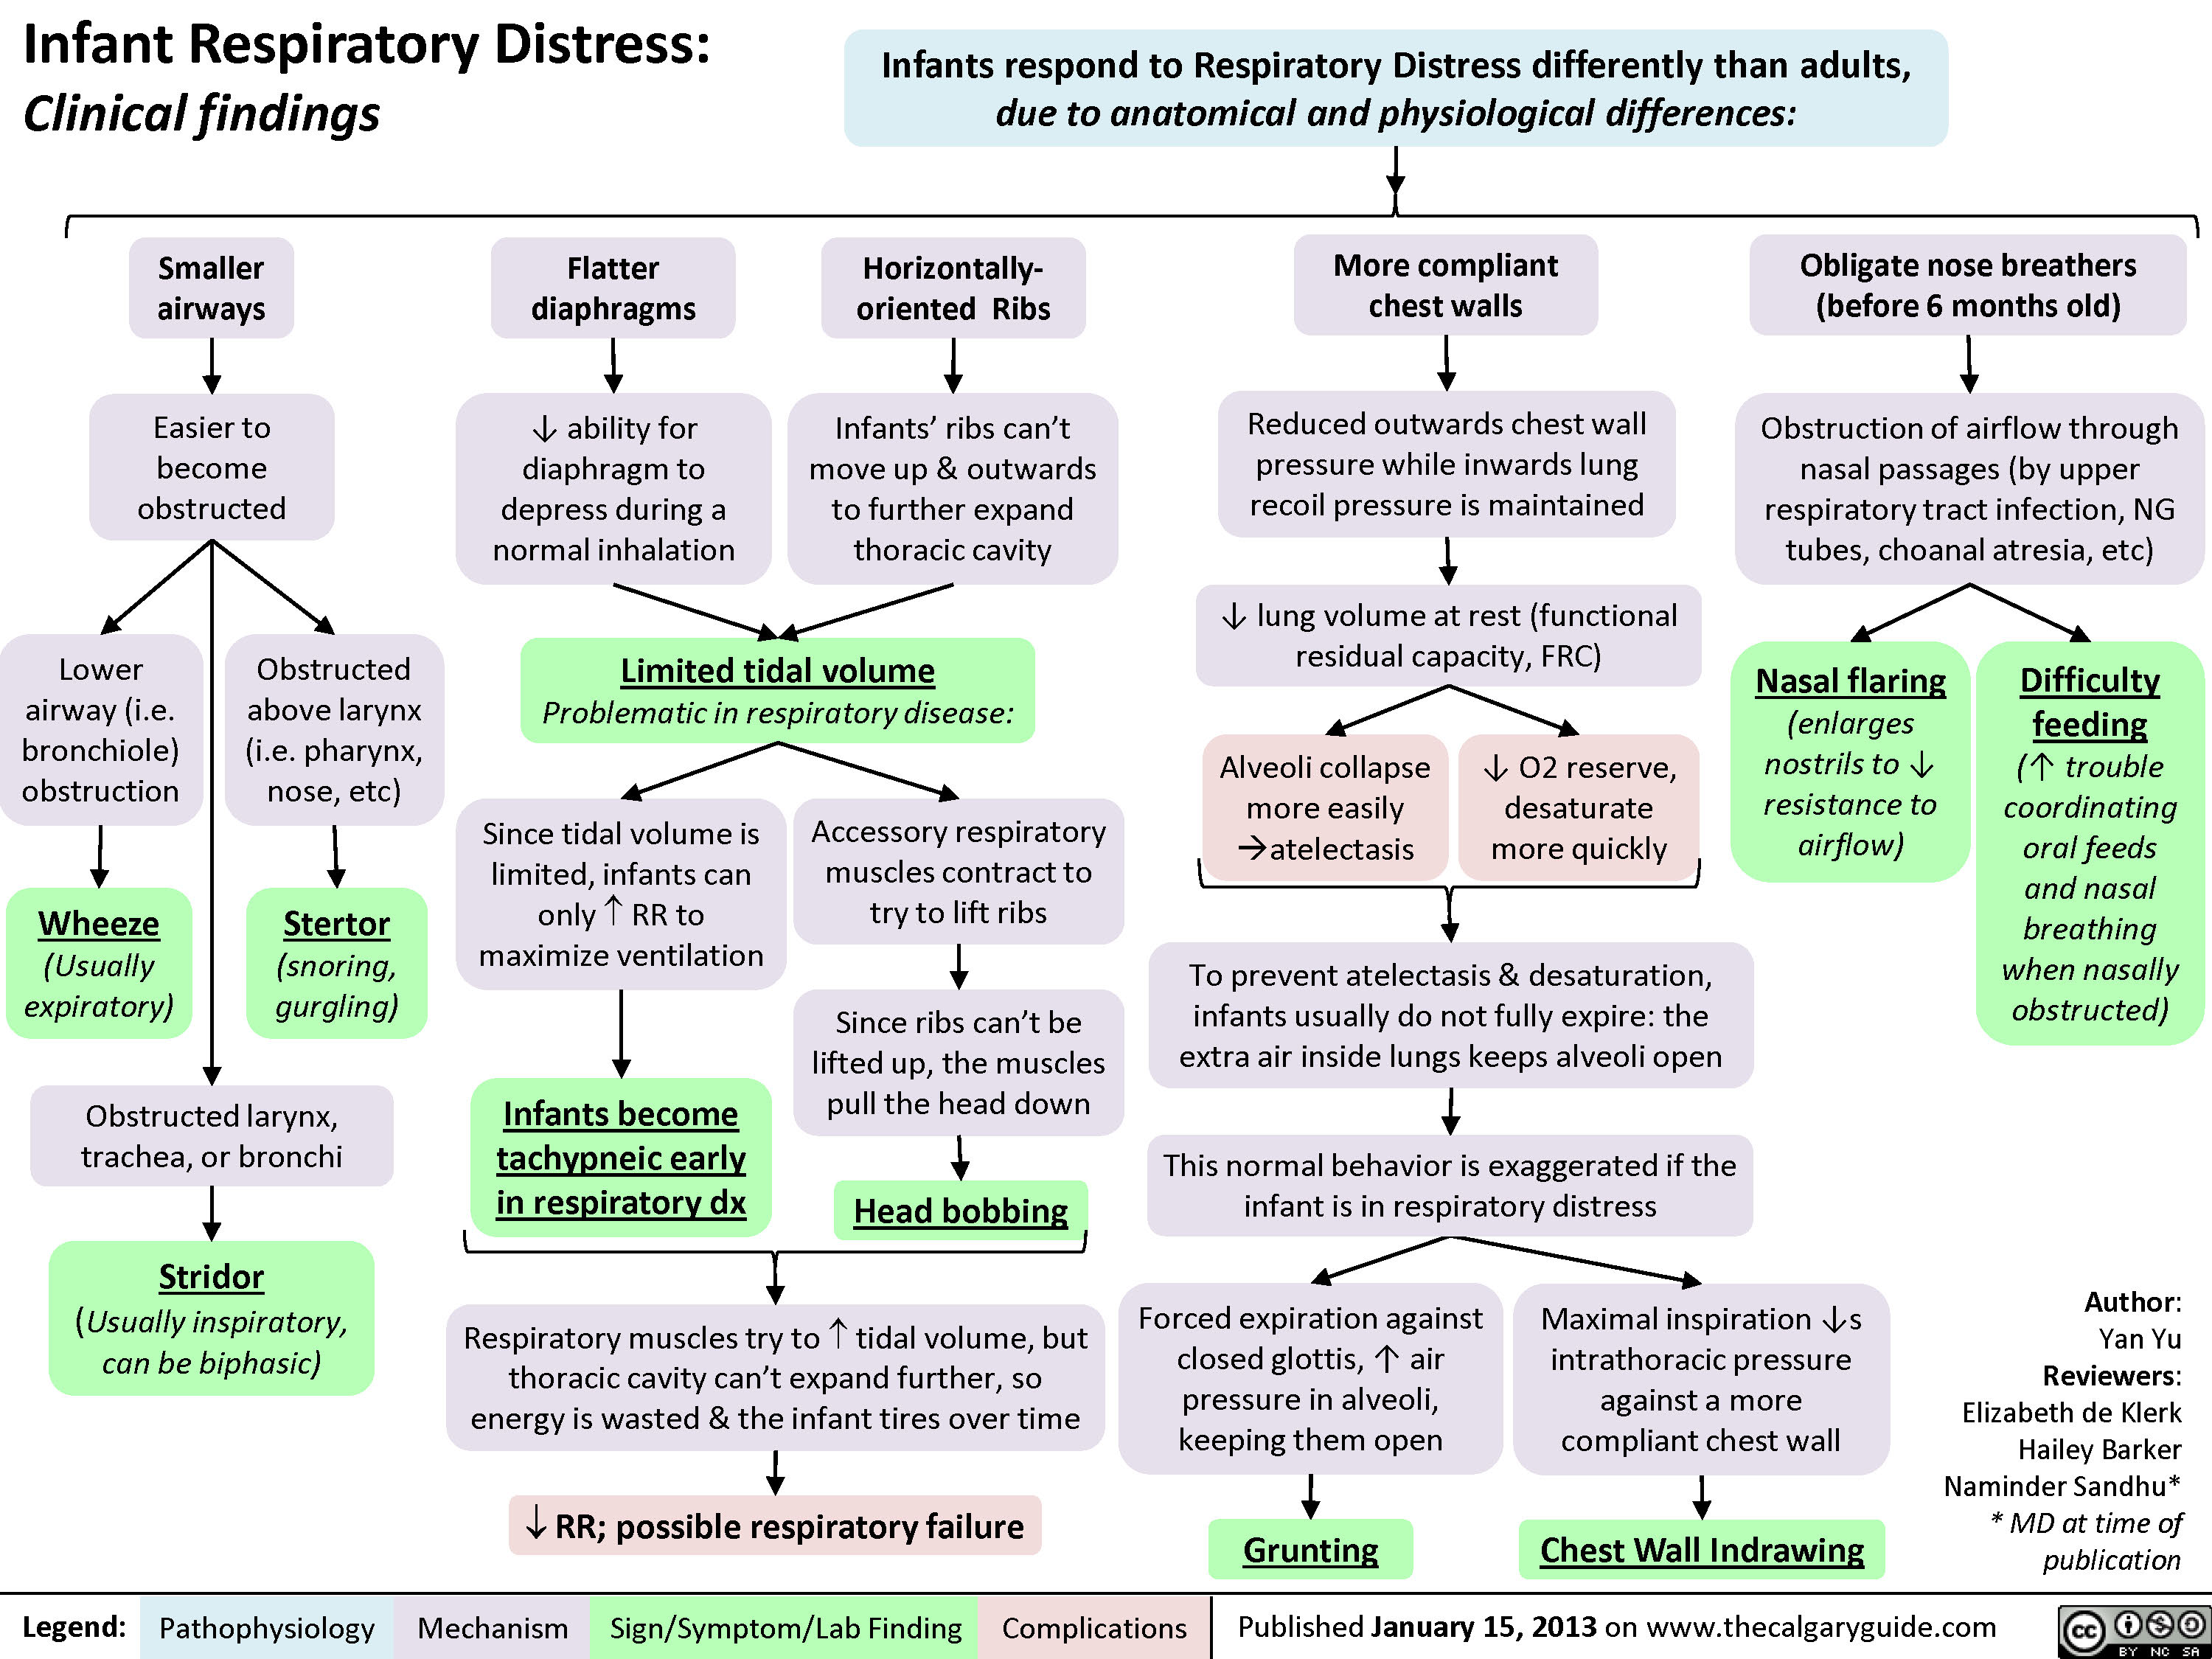 Infant Respiratory Distress: Clinical findings